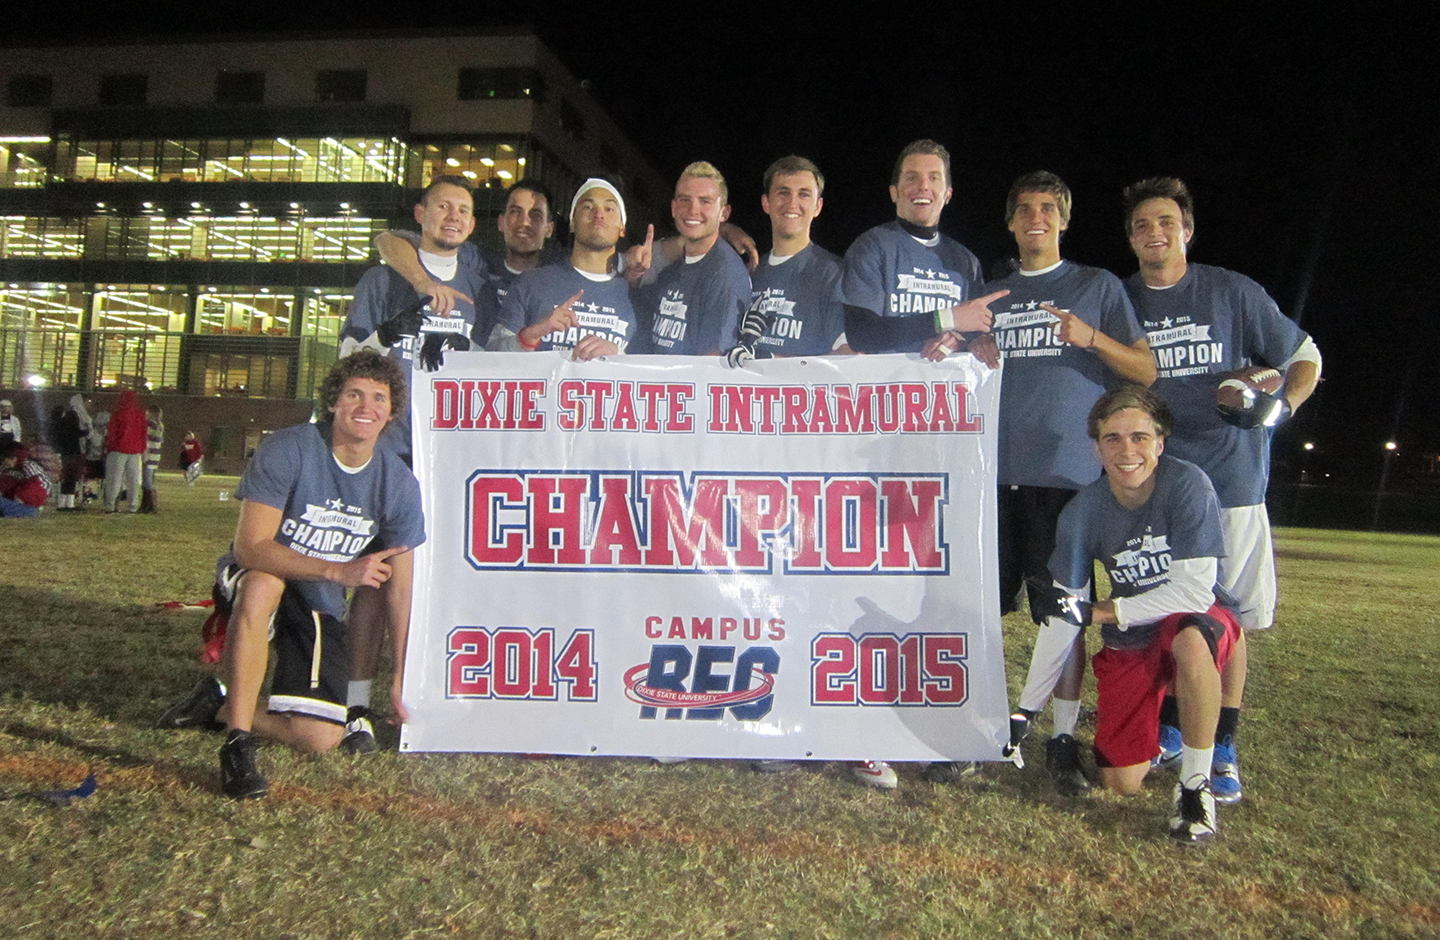 Students on the team Outta Control celebrate winning the 2014-15 Dixie State University intramural flag football championship. Photo taken on the field  field right by the Holland Centennial Commons building, Dixie State University campus, St. George, Utah, Nov. 4, 2015 | Photo courtesy of Dixie State University, St. George News